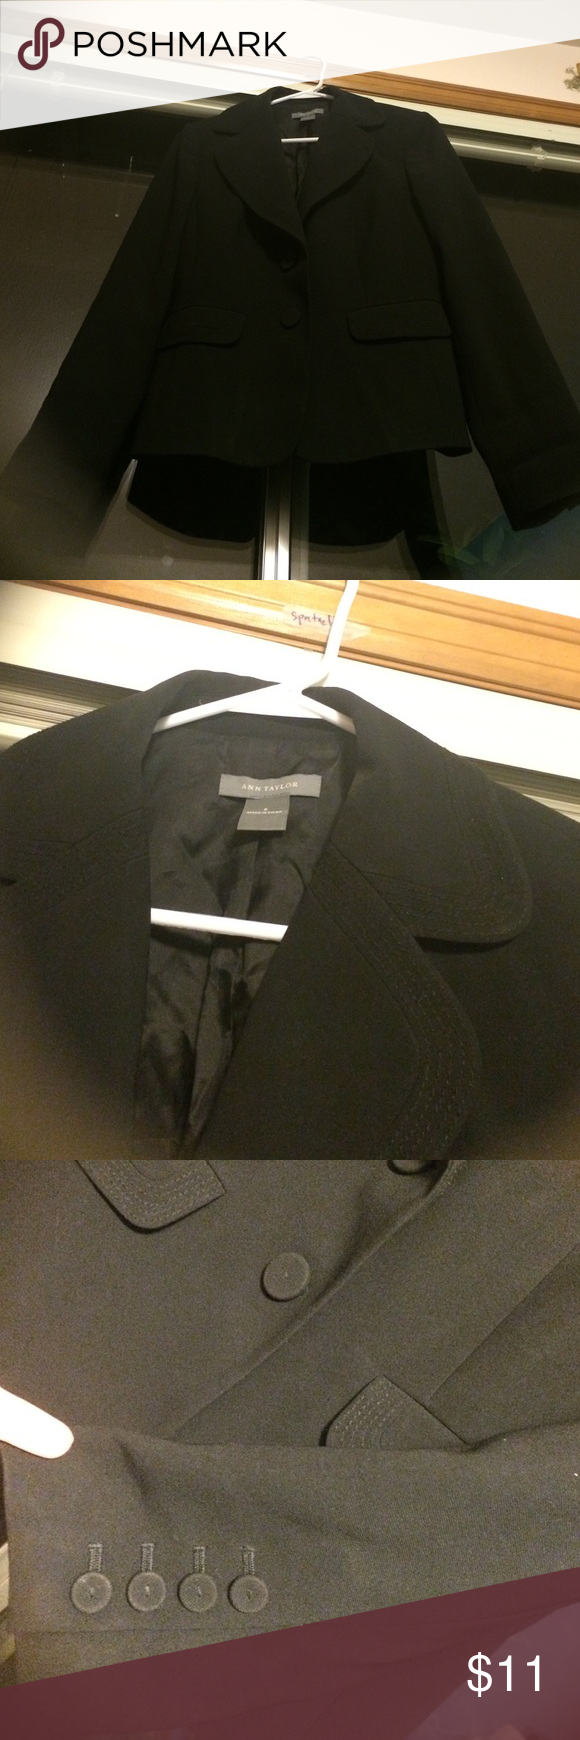 Blazer ☦ Sleek, black blazer with stitching and button embellishments. Lined. Ann Taylor Jackets & Coats Blazers